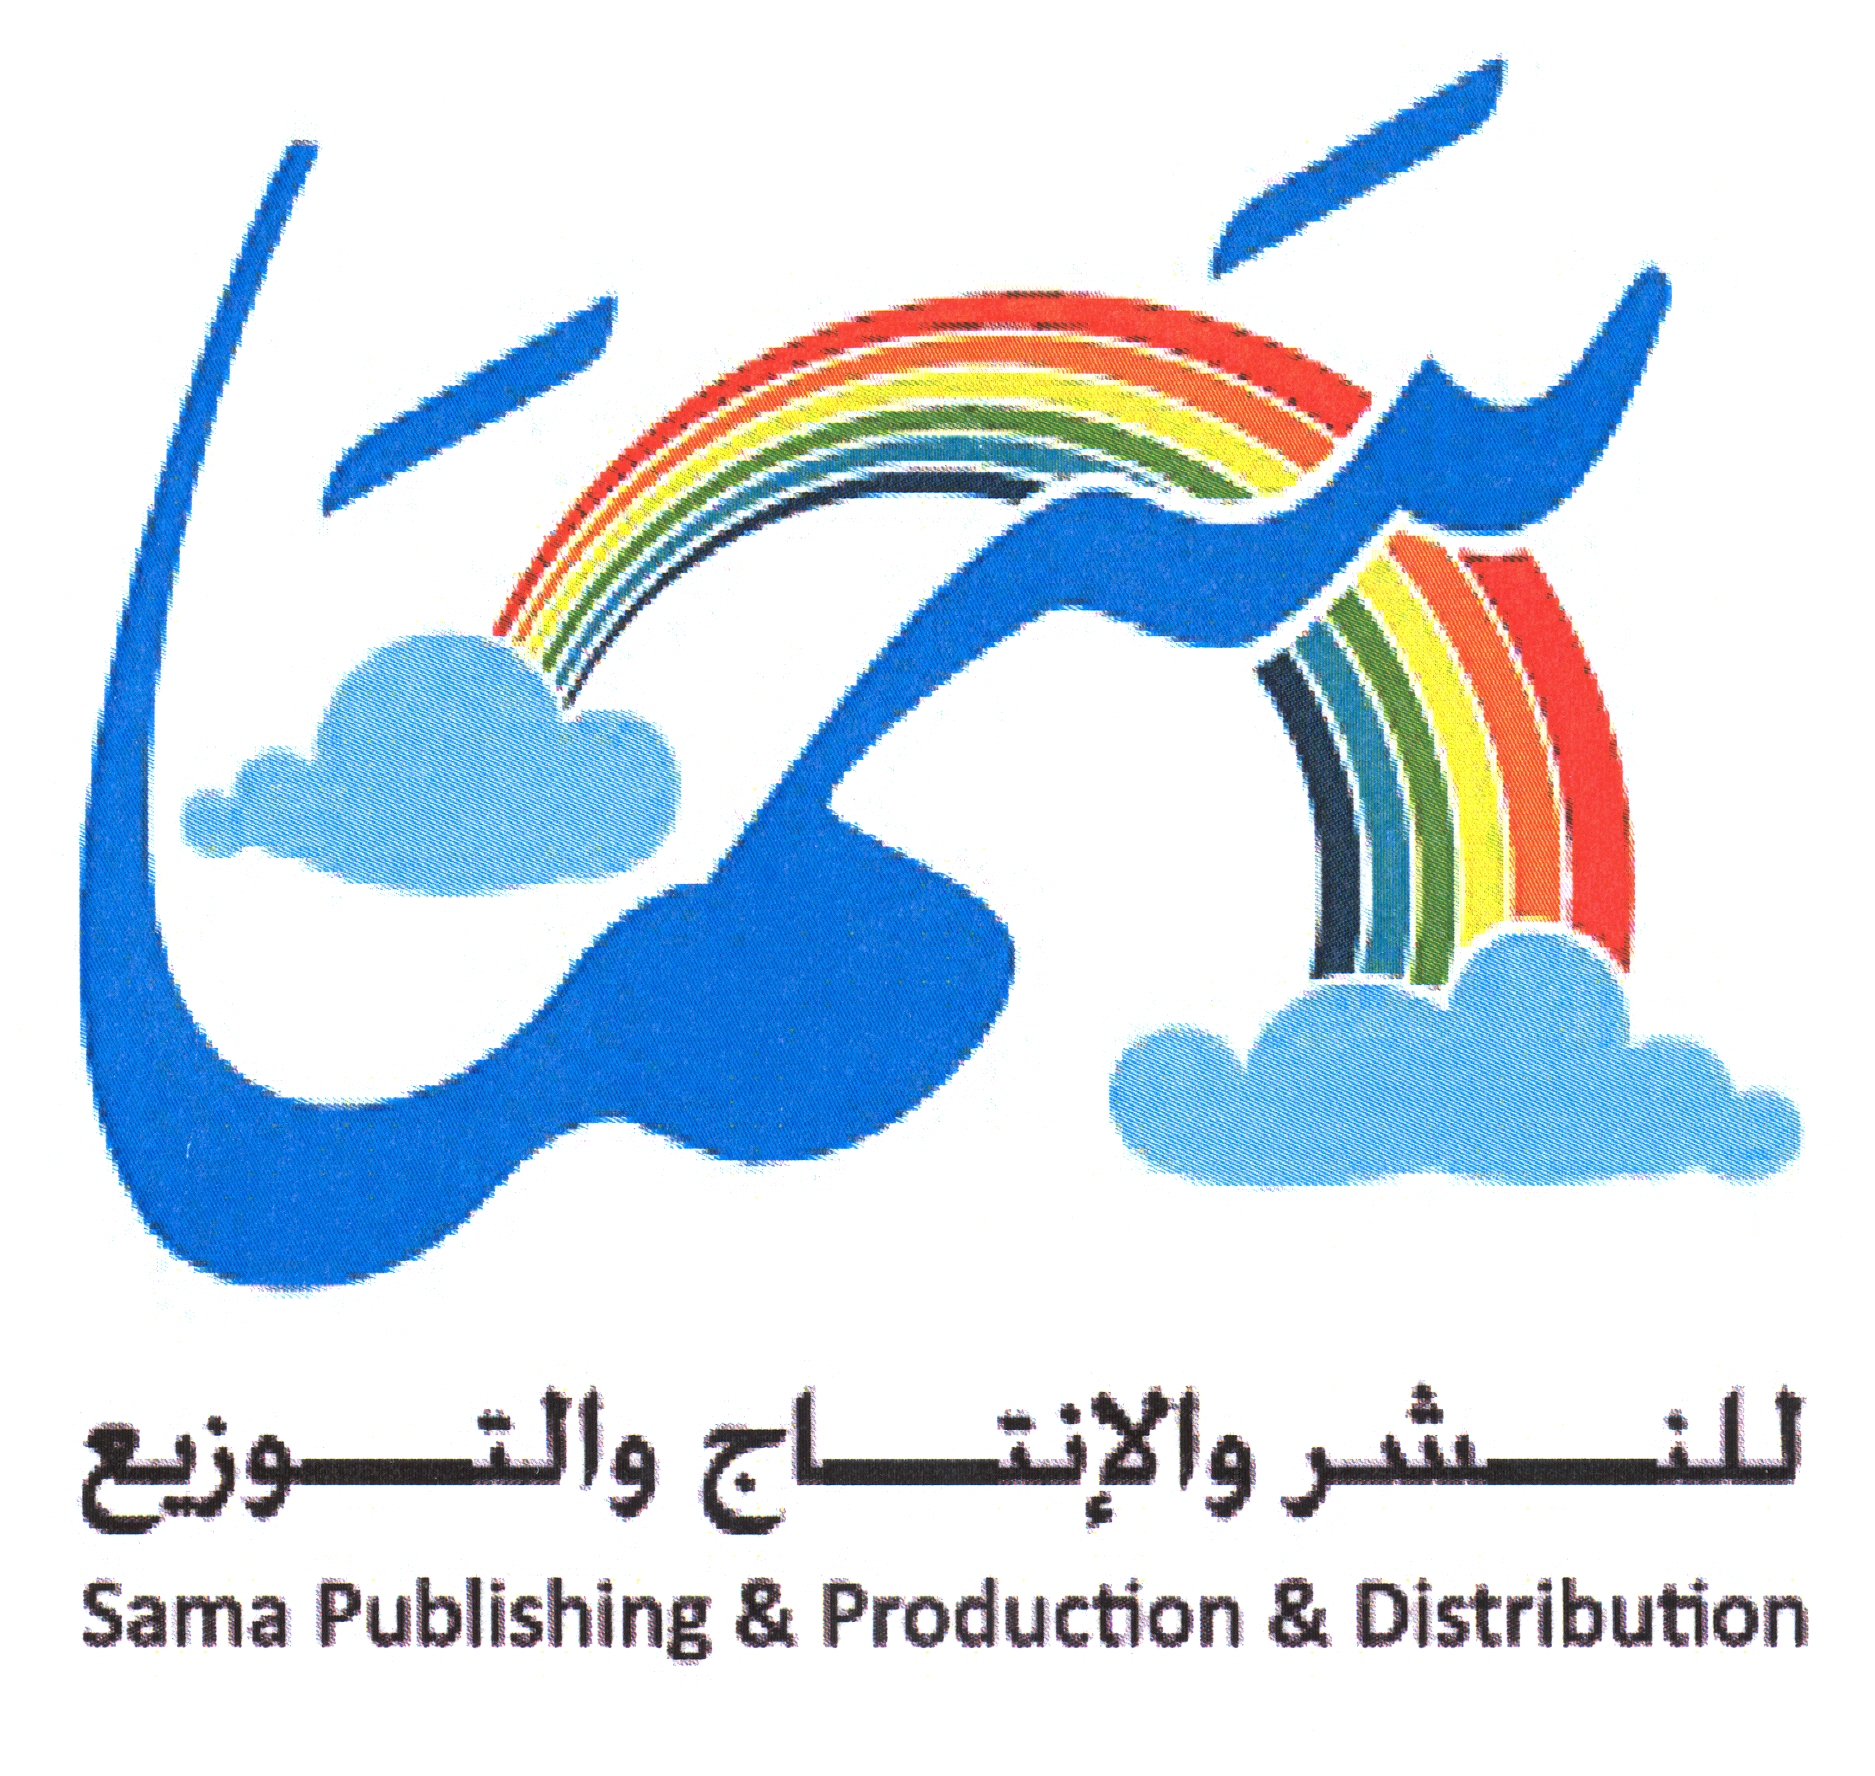 Sama Publiction & Production & Distribution